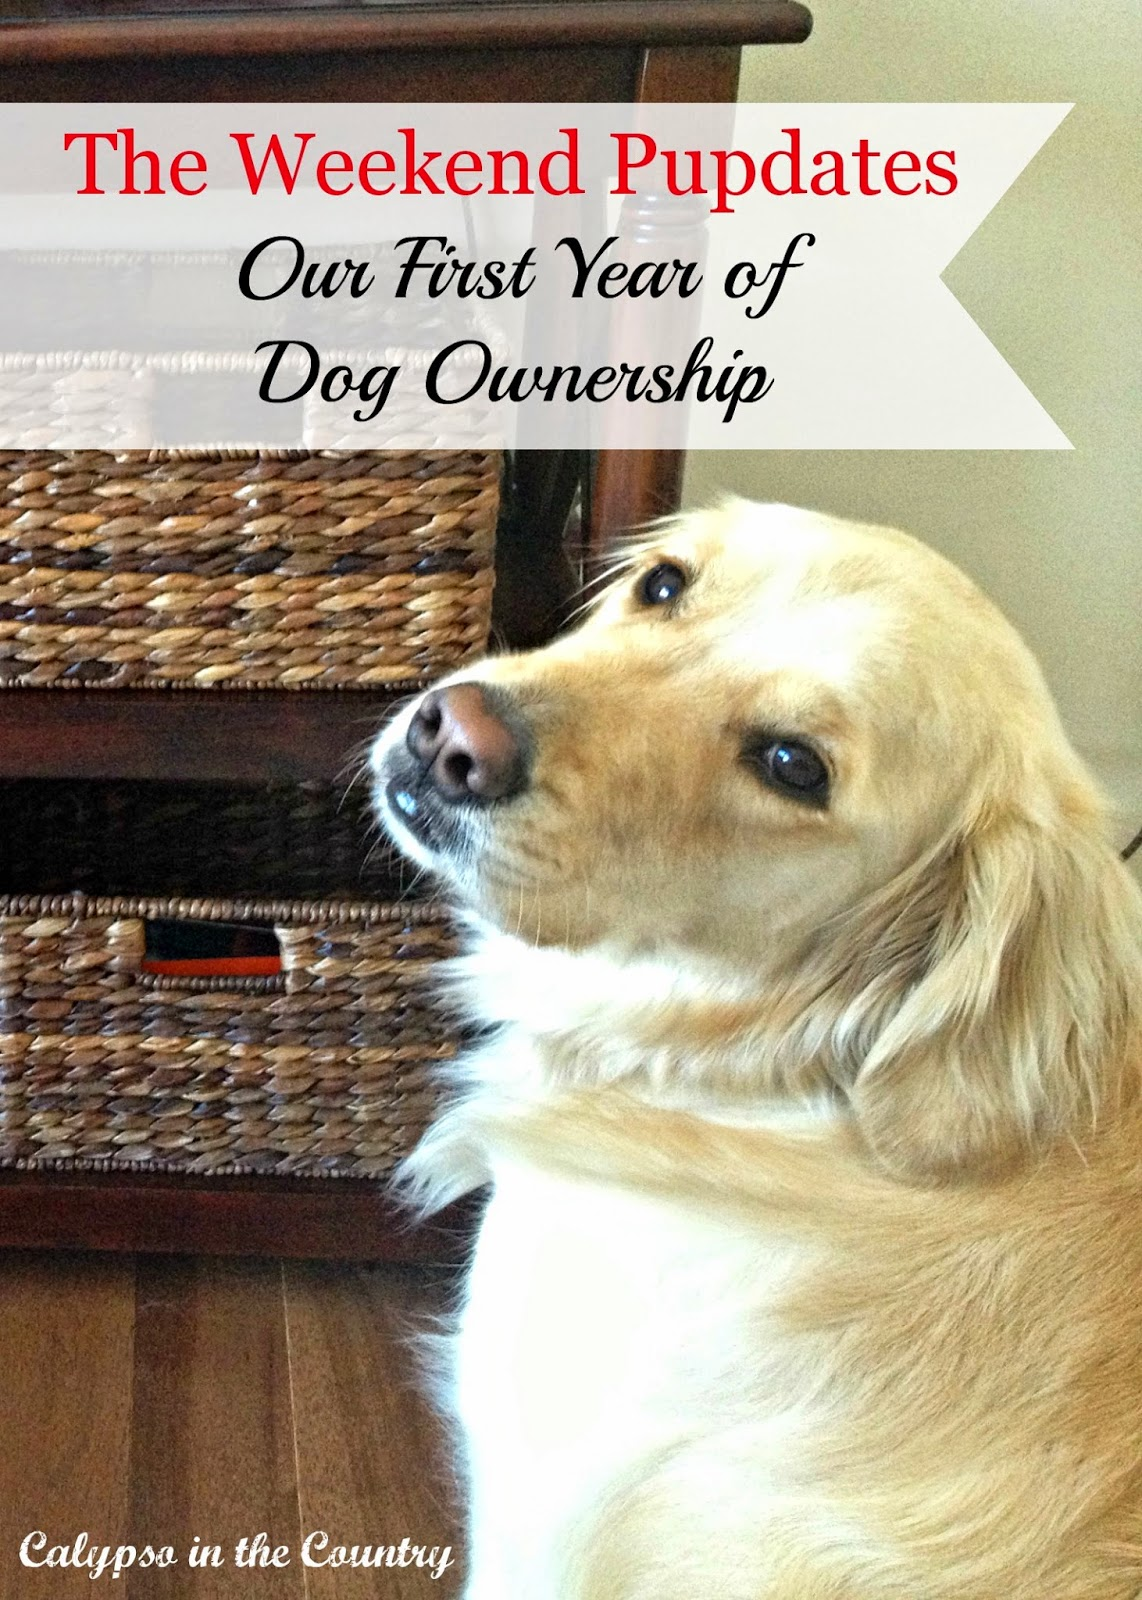 The Weekend Pupdates - Our first year of dog ownership with a golden retriever.